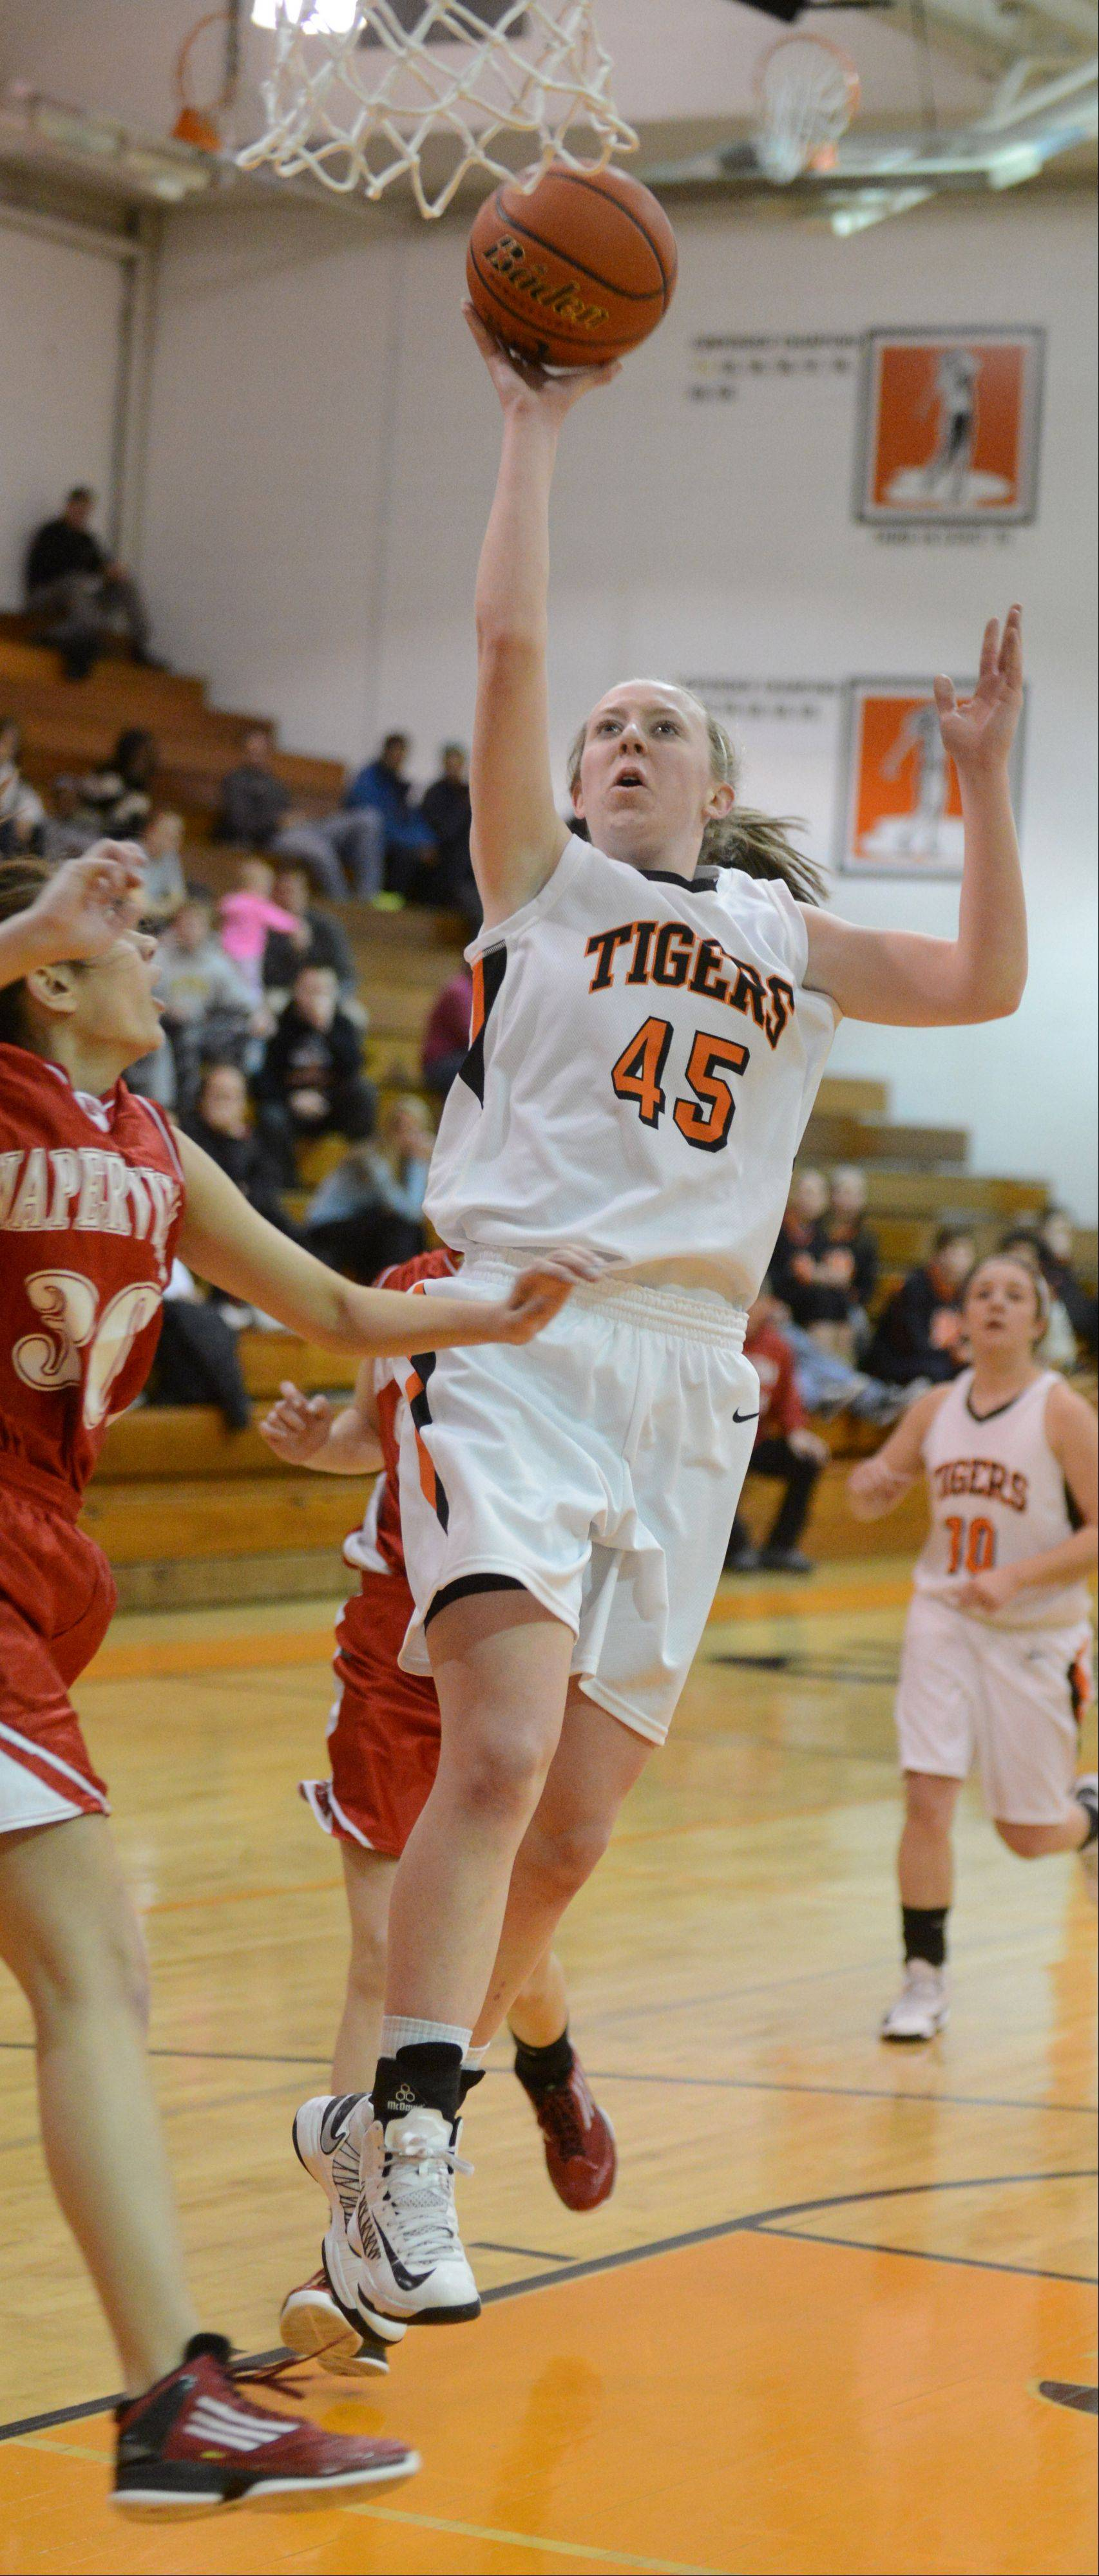 Meghan Waldron of Wheaton Warrenville south takes one to the net during the Naperville central at Wheaton Warrenville South girls basketball game Thursday.